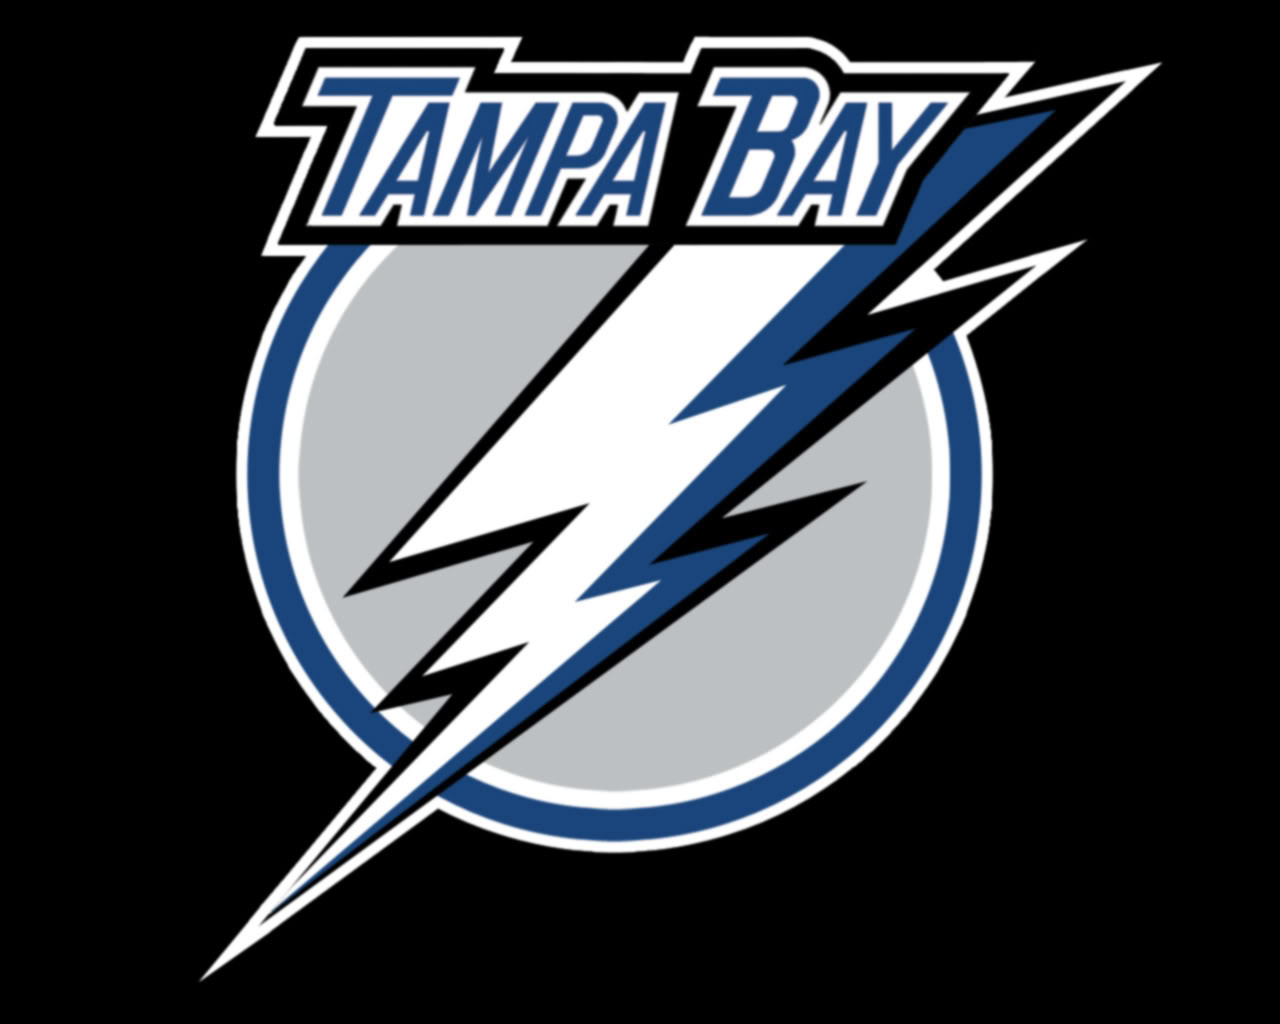 tampa bay lightning logo graphics and comments 1280x1024